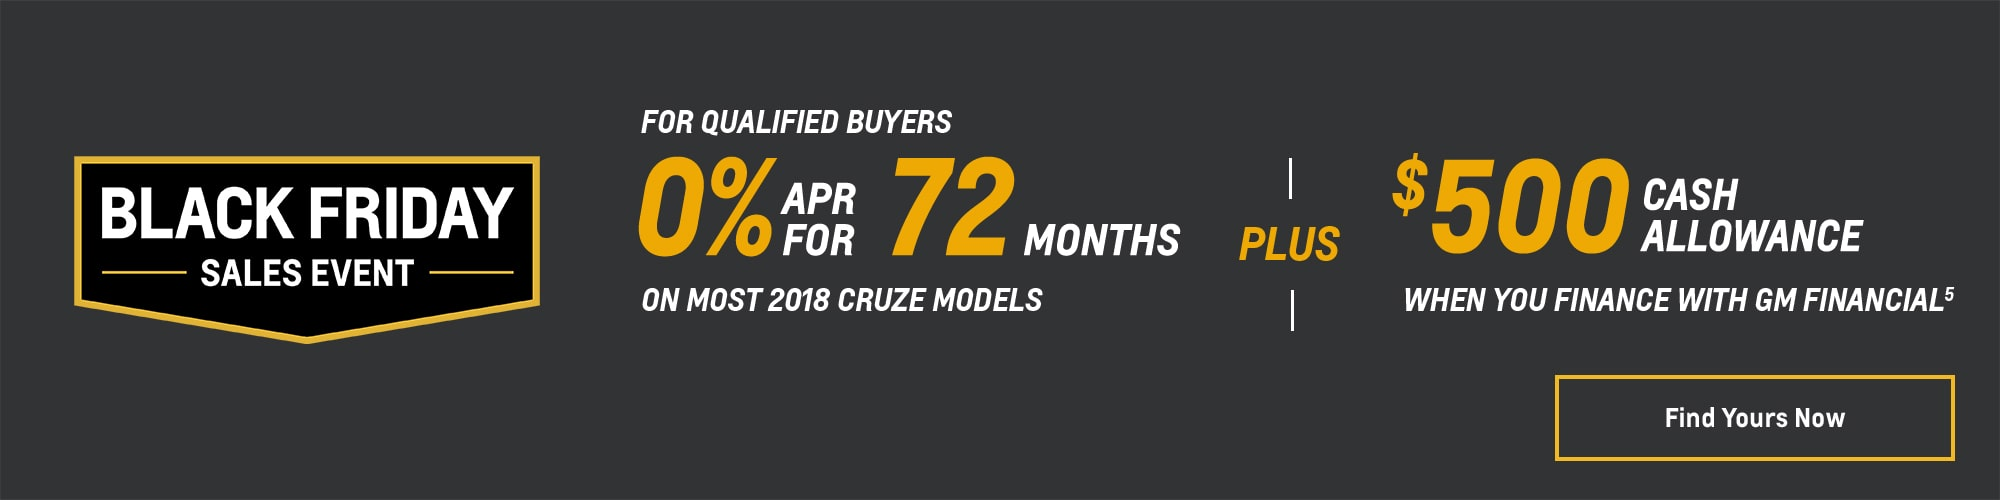 Black Friday Chevy Deals and Offers: 2018 Cruze 0% APR